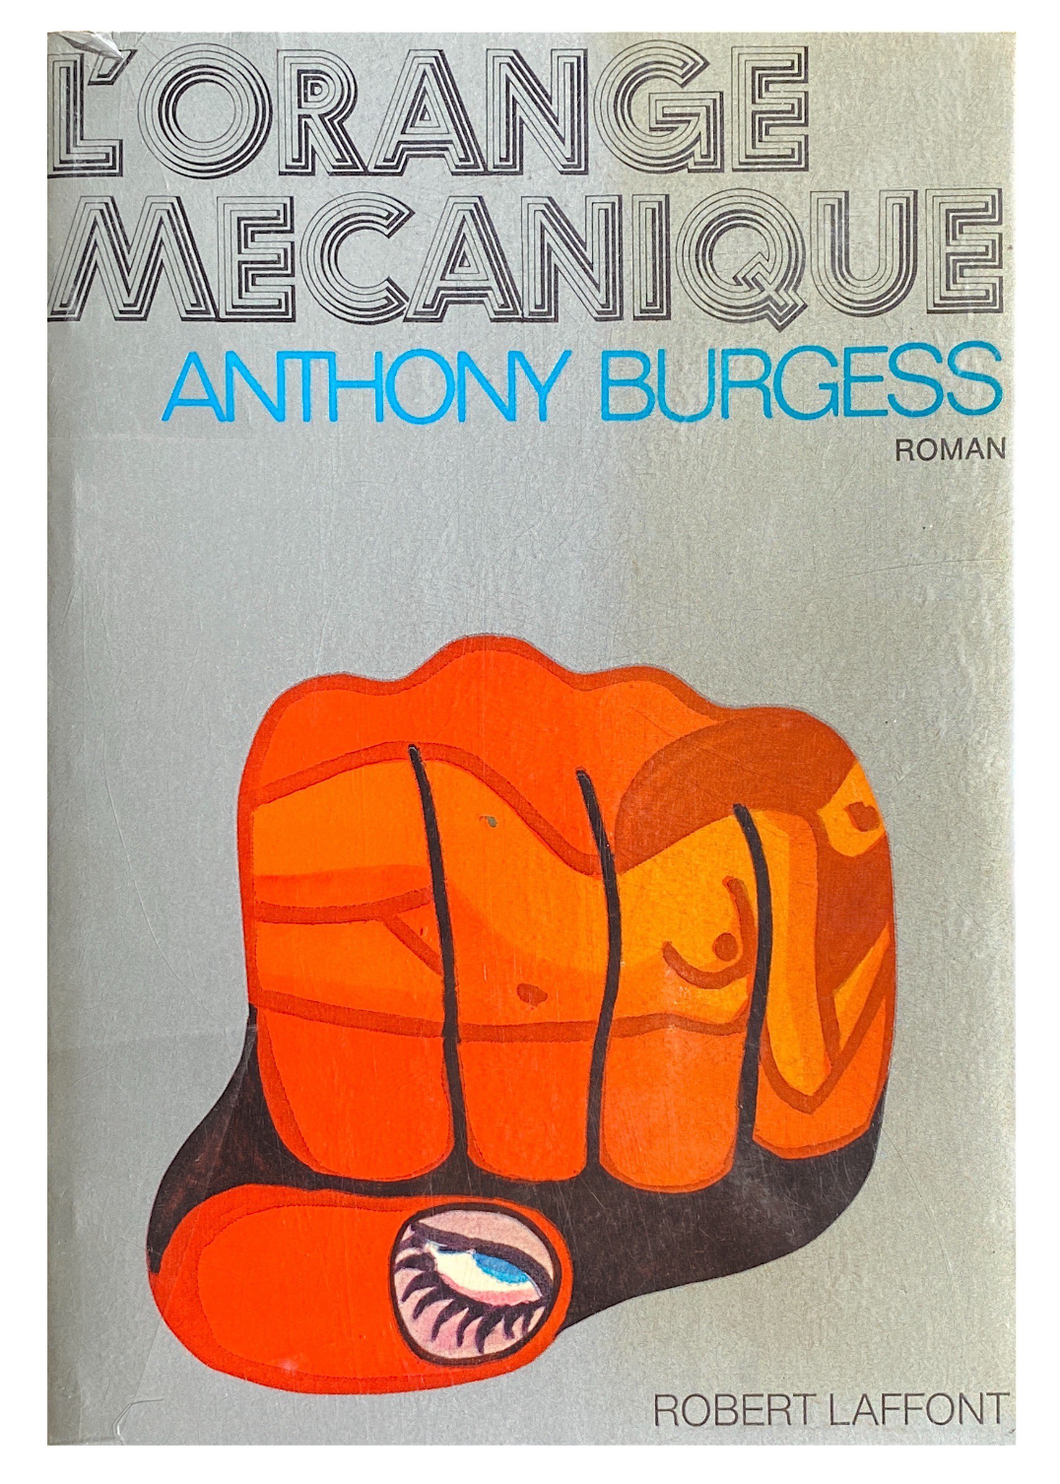 Anthony Burgess L'Orange Mecanique